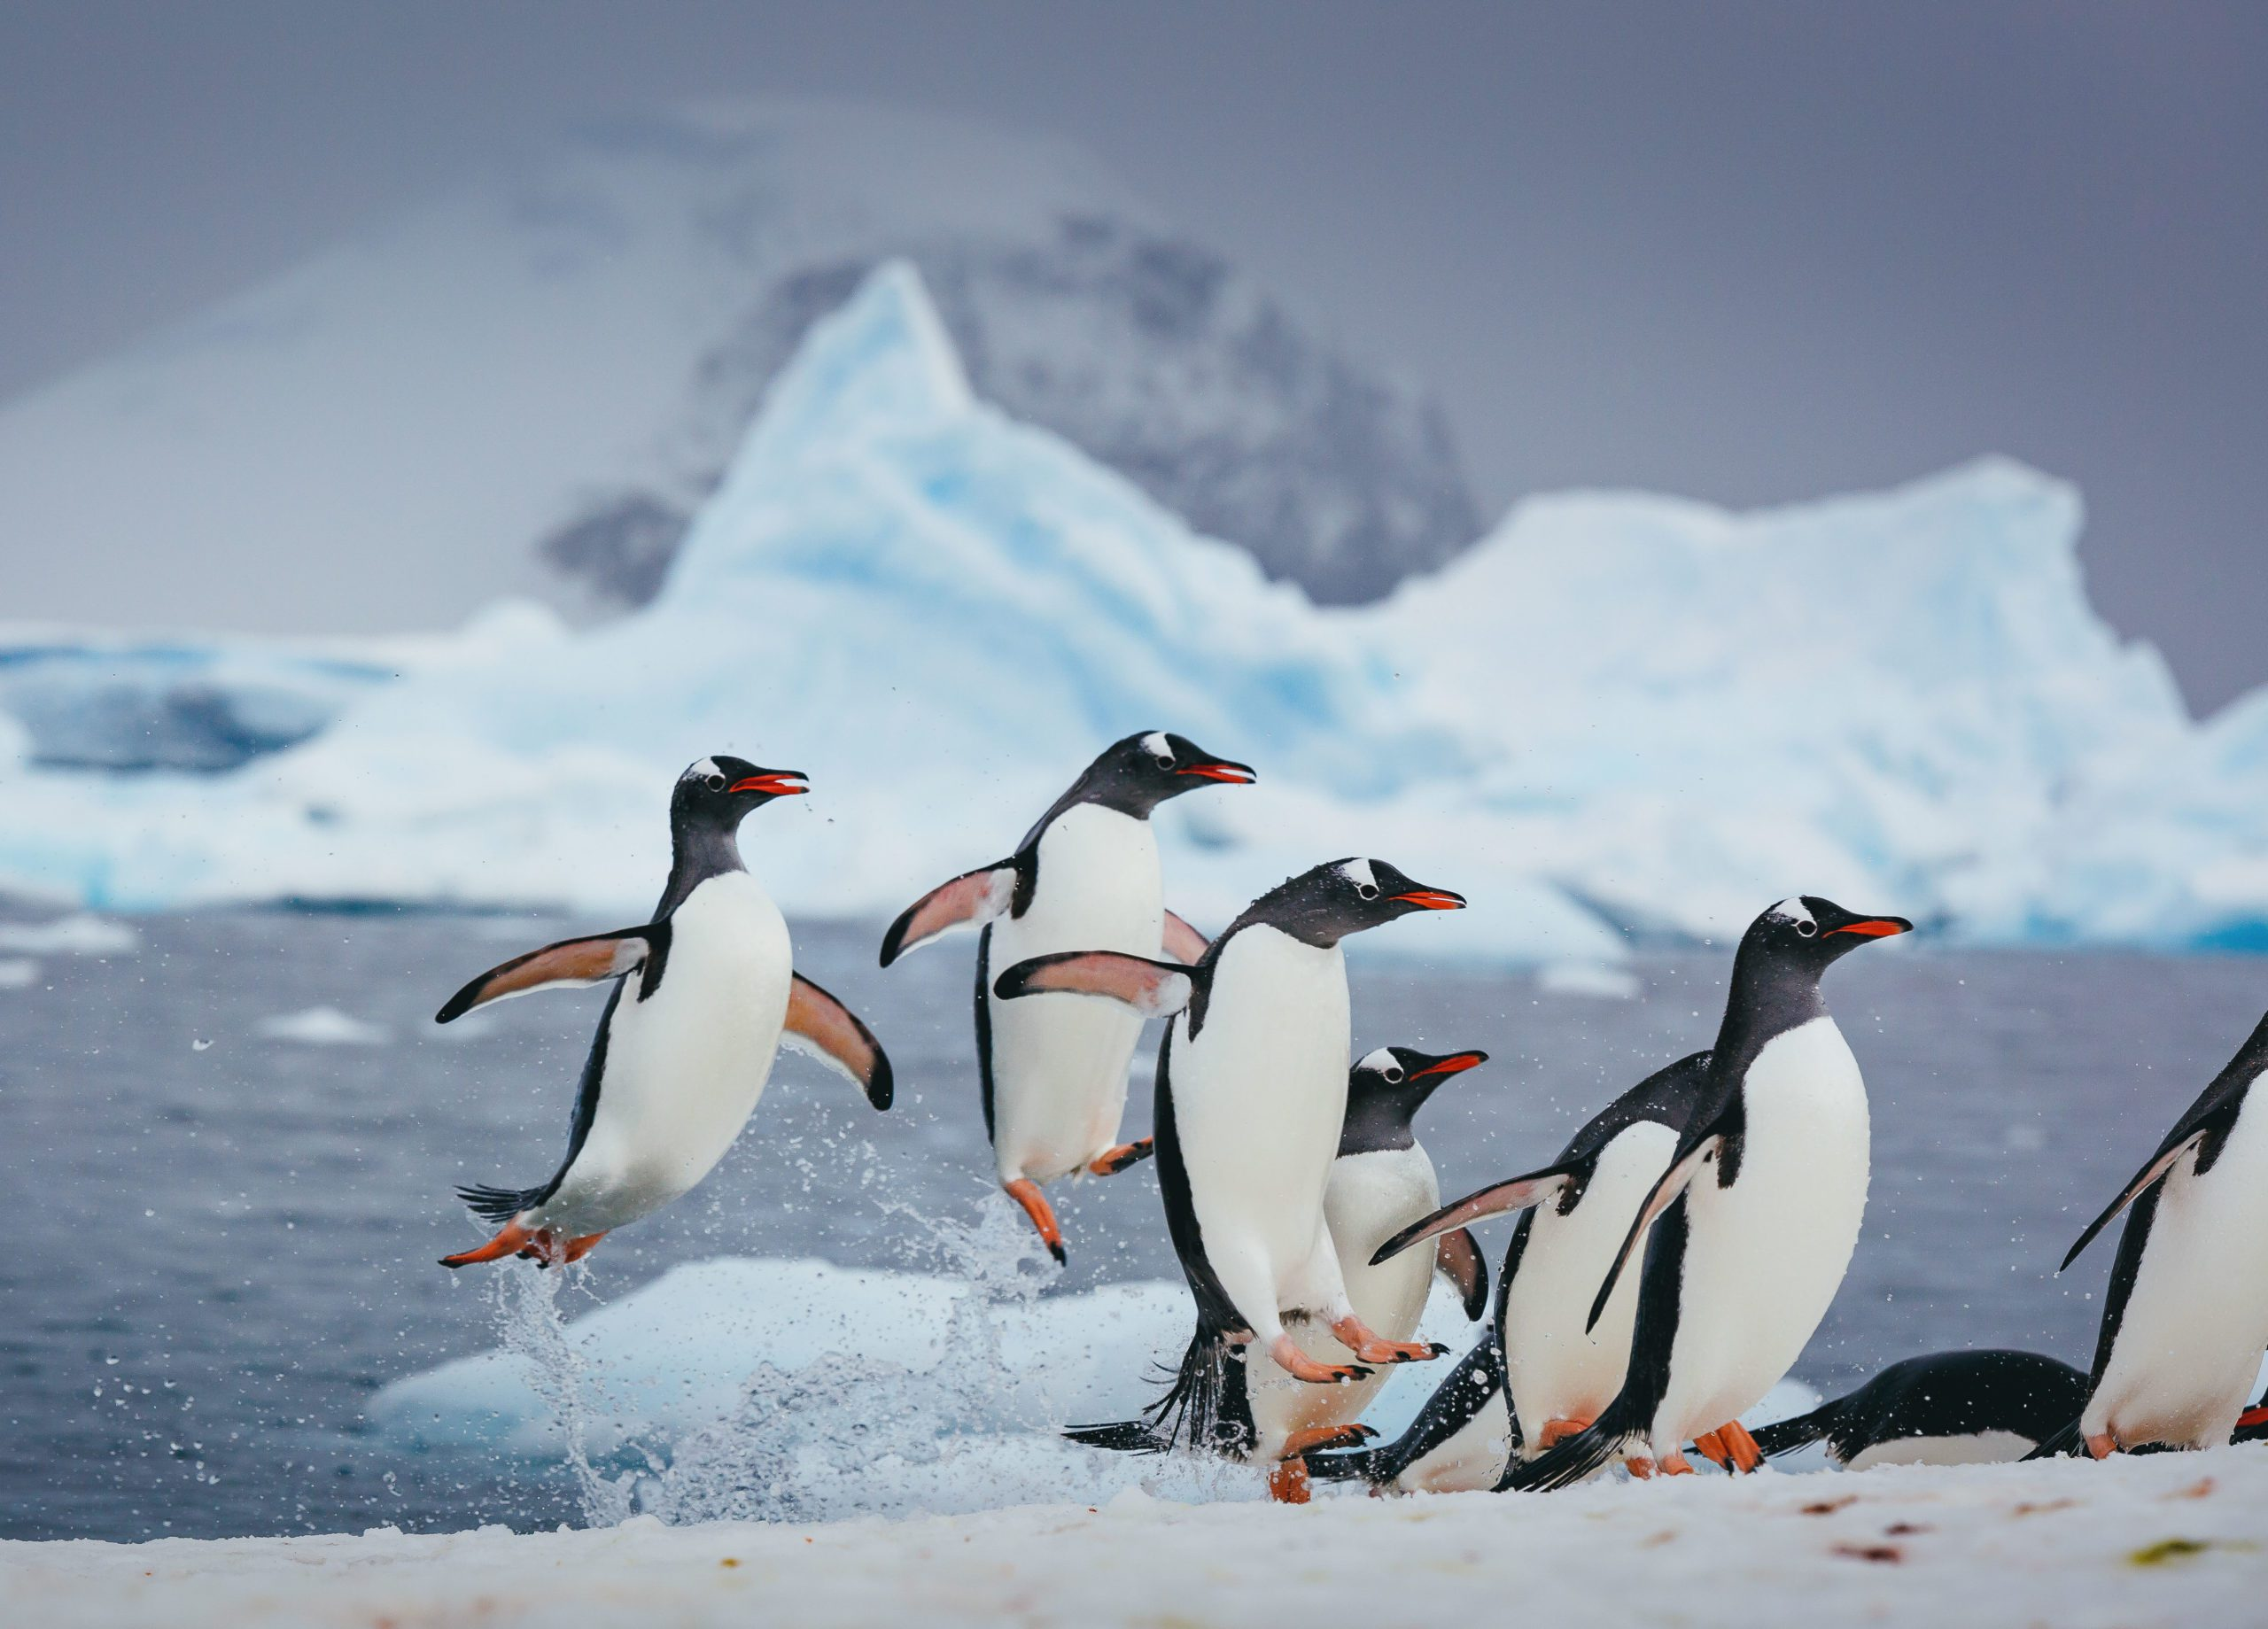 penguins returning to the shore after an icy swim in the Antarctic waters